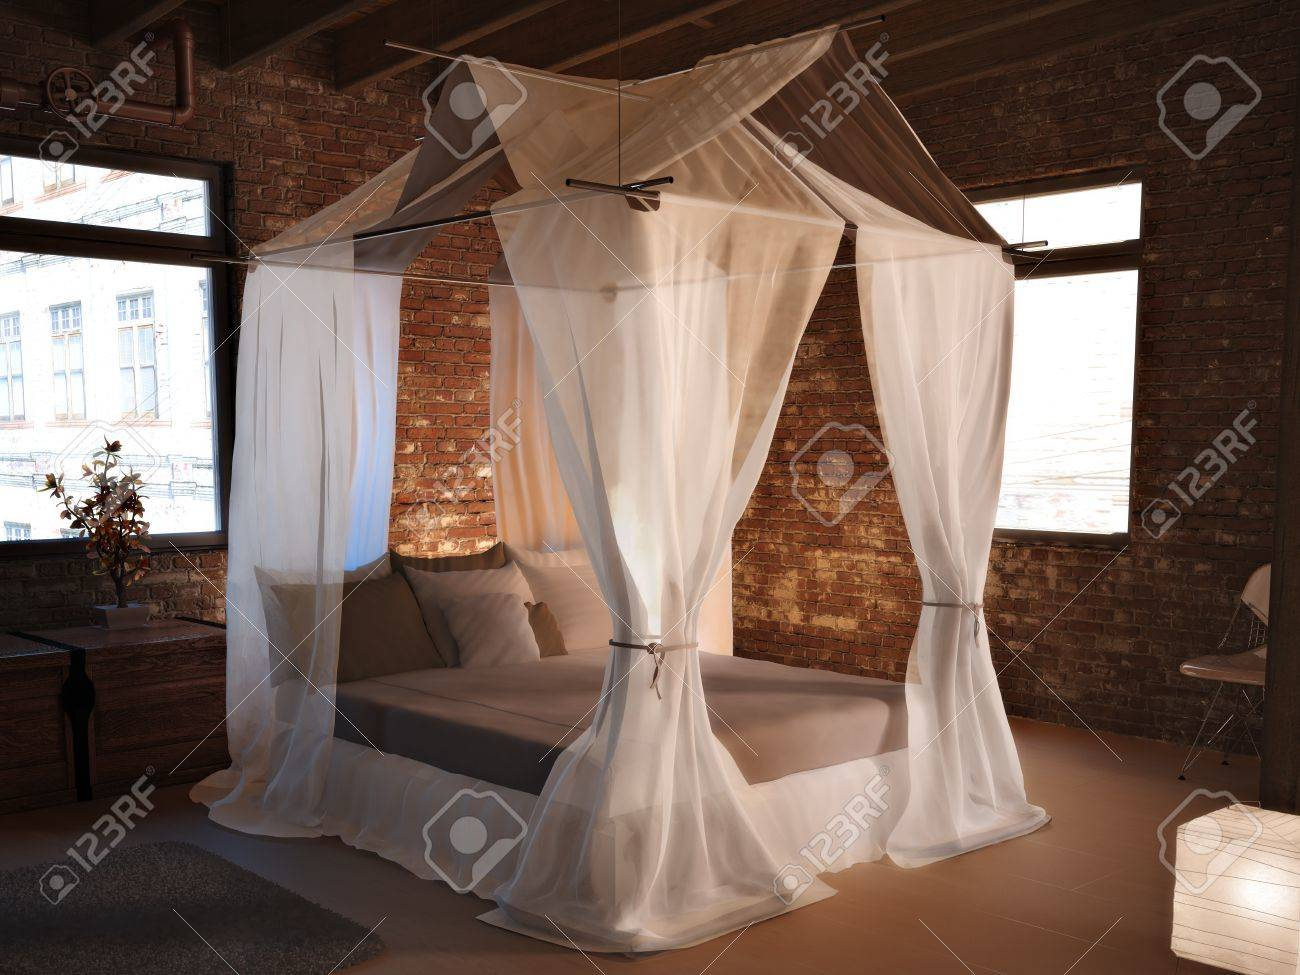 Rustic elegance, An elegant bed in a rustic room setting concept Stock Photo - 20163868